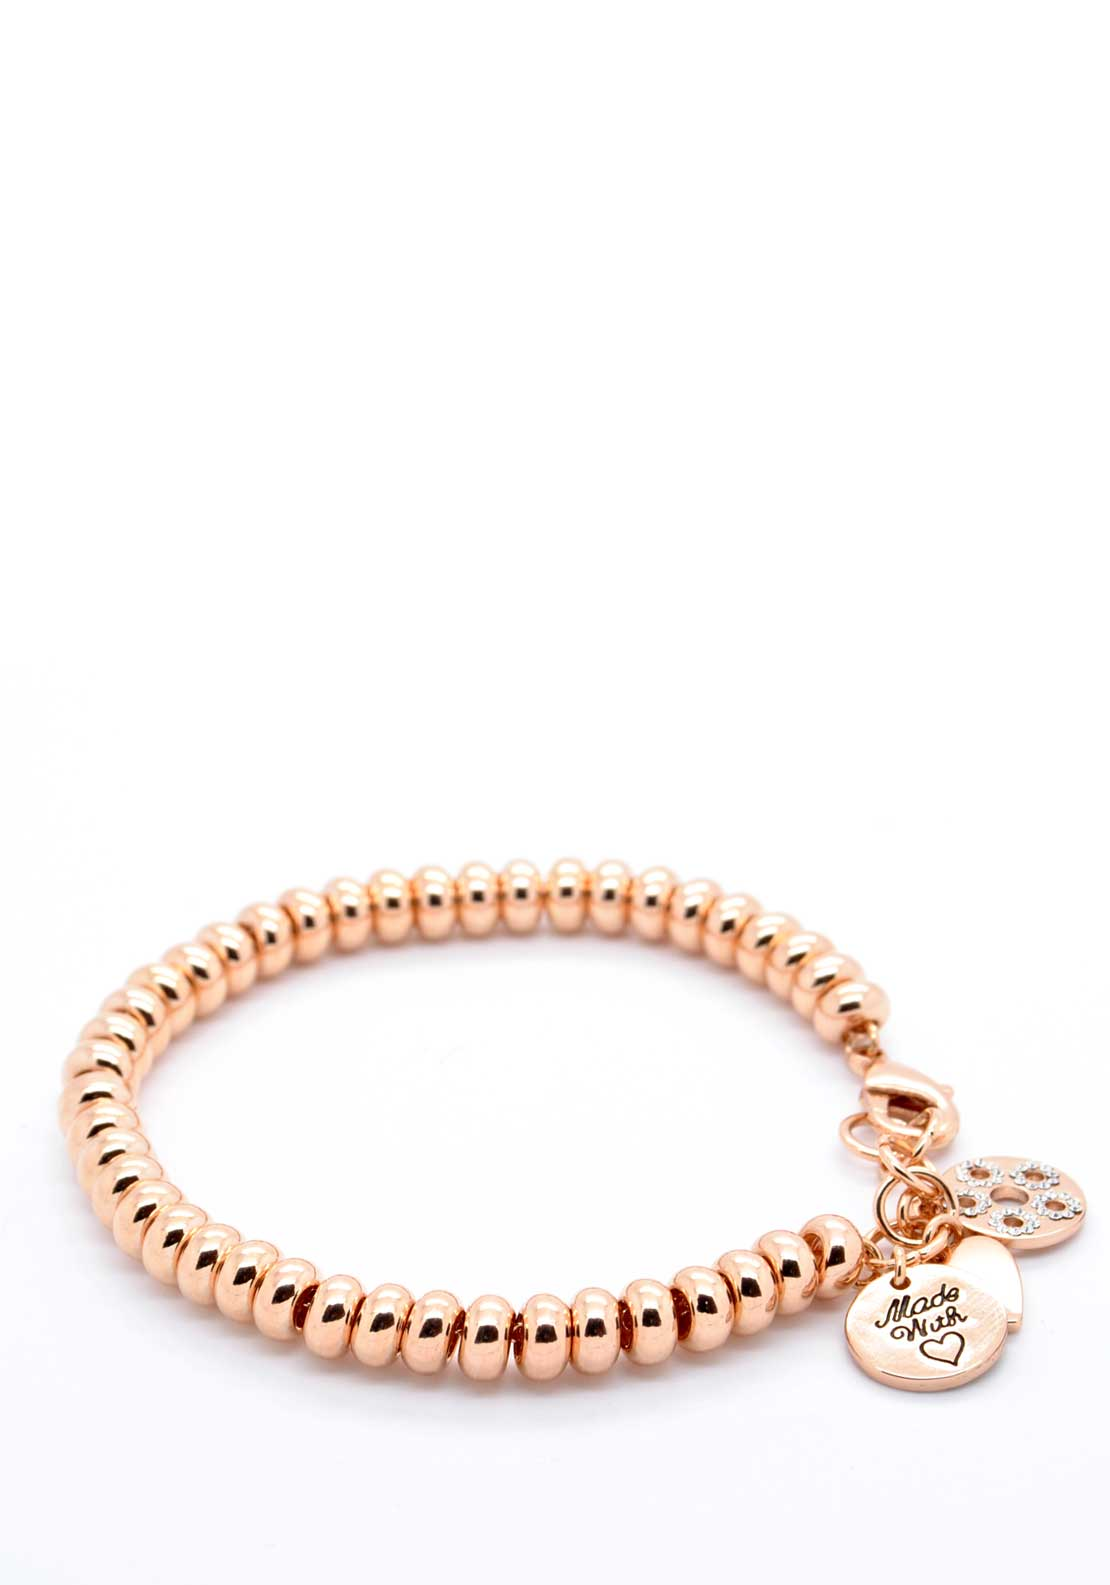 Absolute Jewellery Designer Style Charm Bracelet, Rose Gold